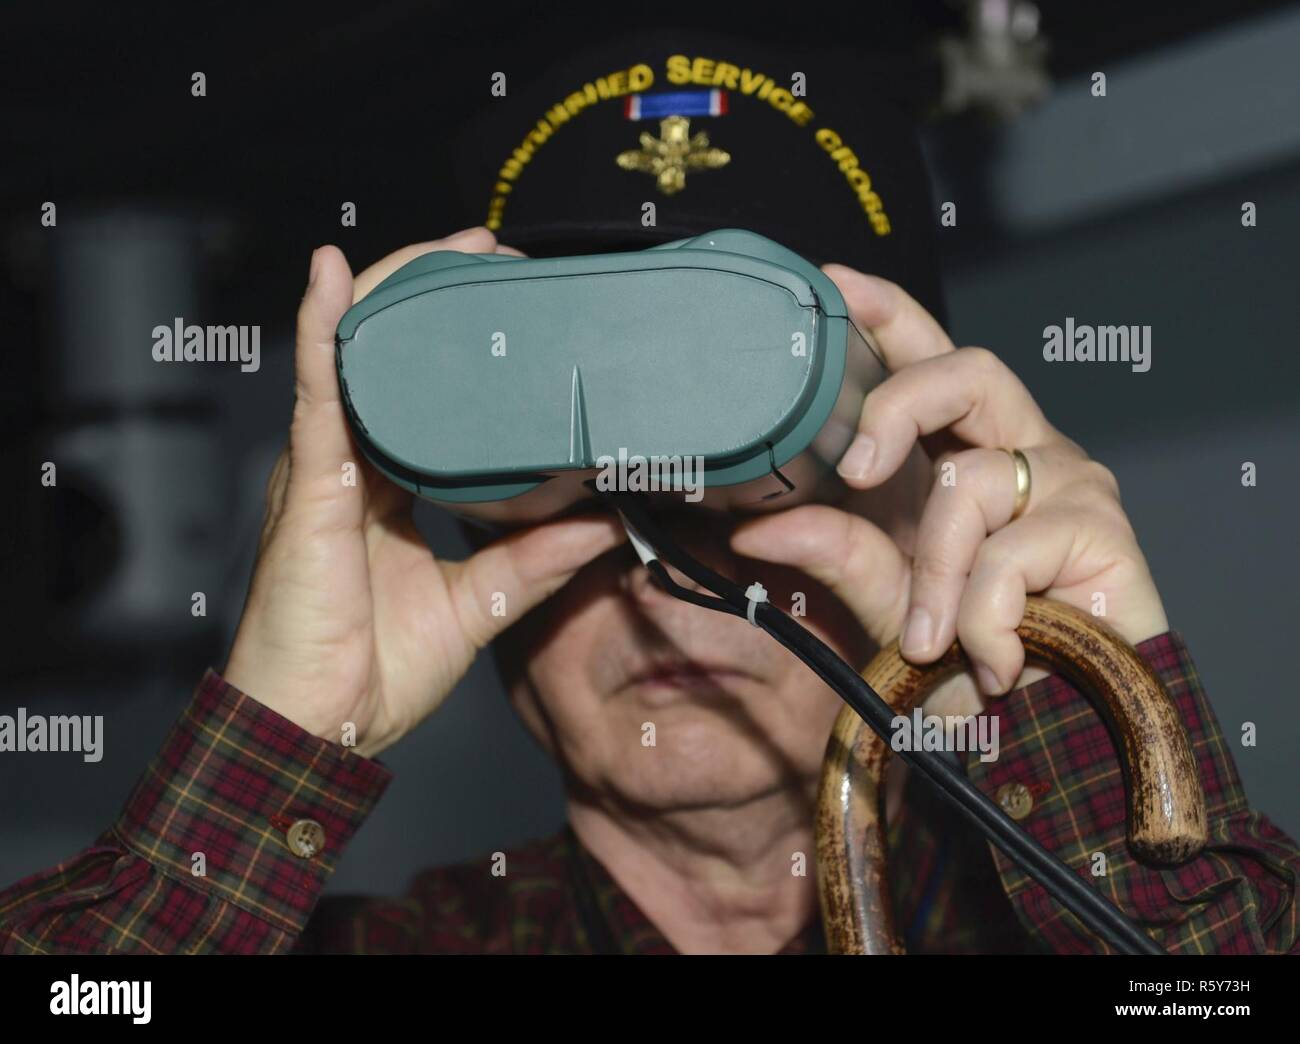 Retired U.S. Army 1st Sgt. Claude Quick, Legion of Valor member, looks through simulation binoculars at the Maritime Intermodal Training Department while on a tour at Joint Base Langley-Eustis, Va., April 21, 2017. Each year, members of the Legion of Valor gather for an annual convention to enhance their understanding of current military affairs and provide mentorship from personal accomplishments or failures. Stock Photo